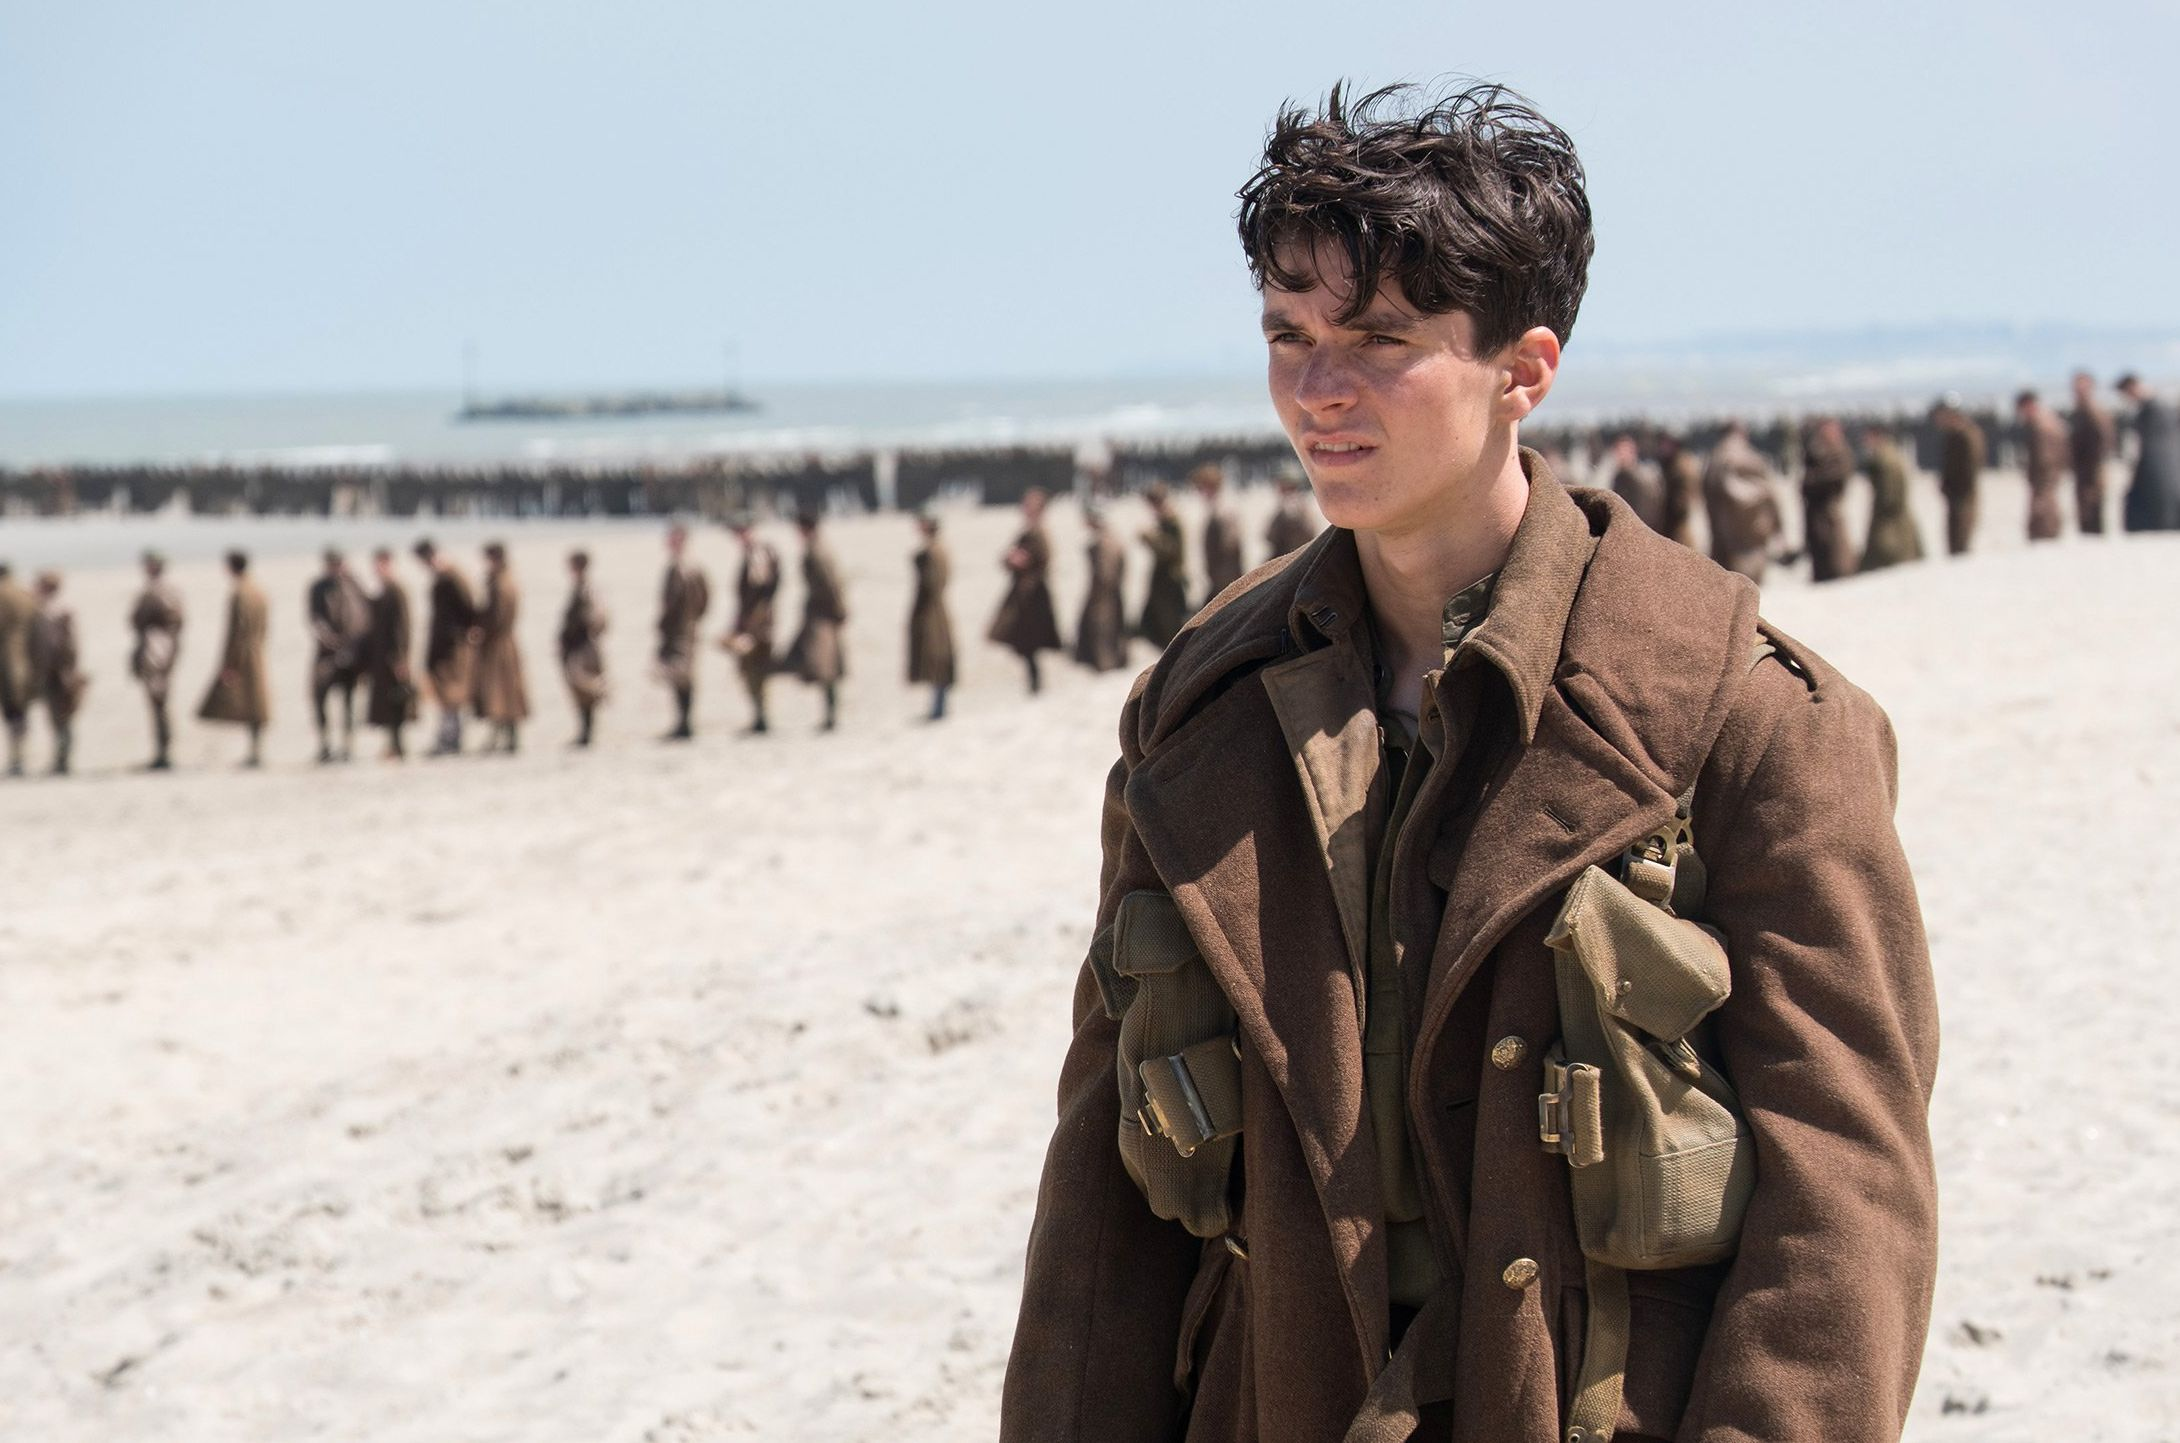 Fionn Whitehead looks on in a new image from Christopher Nol